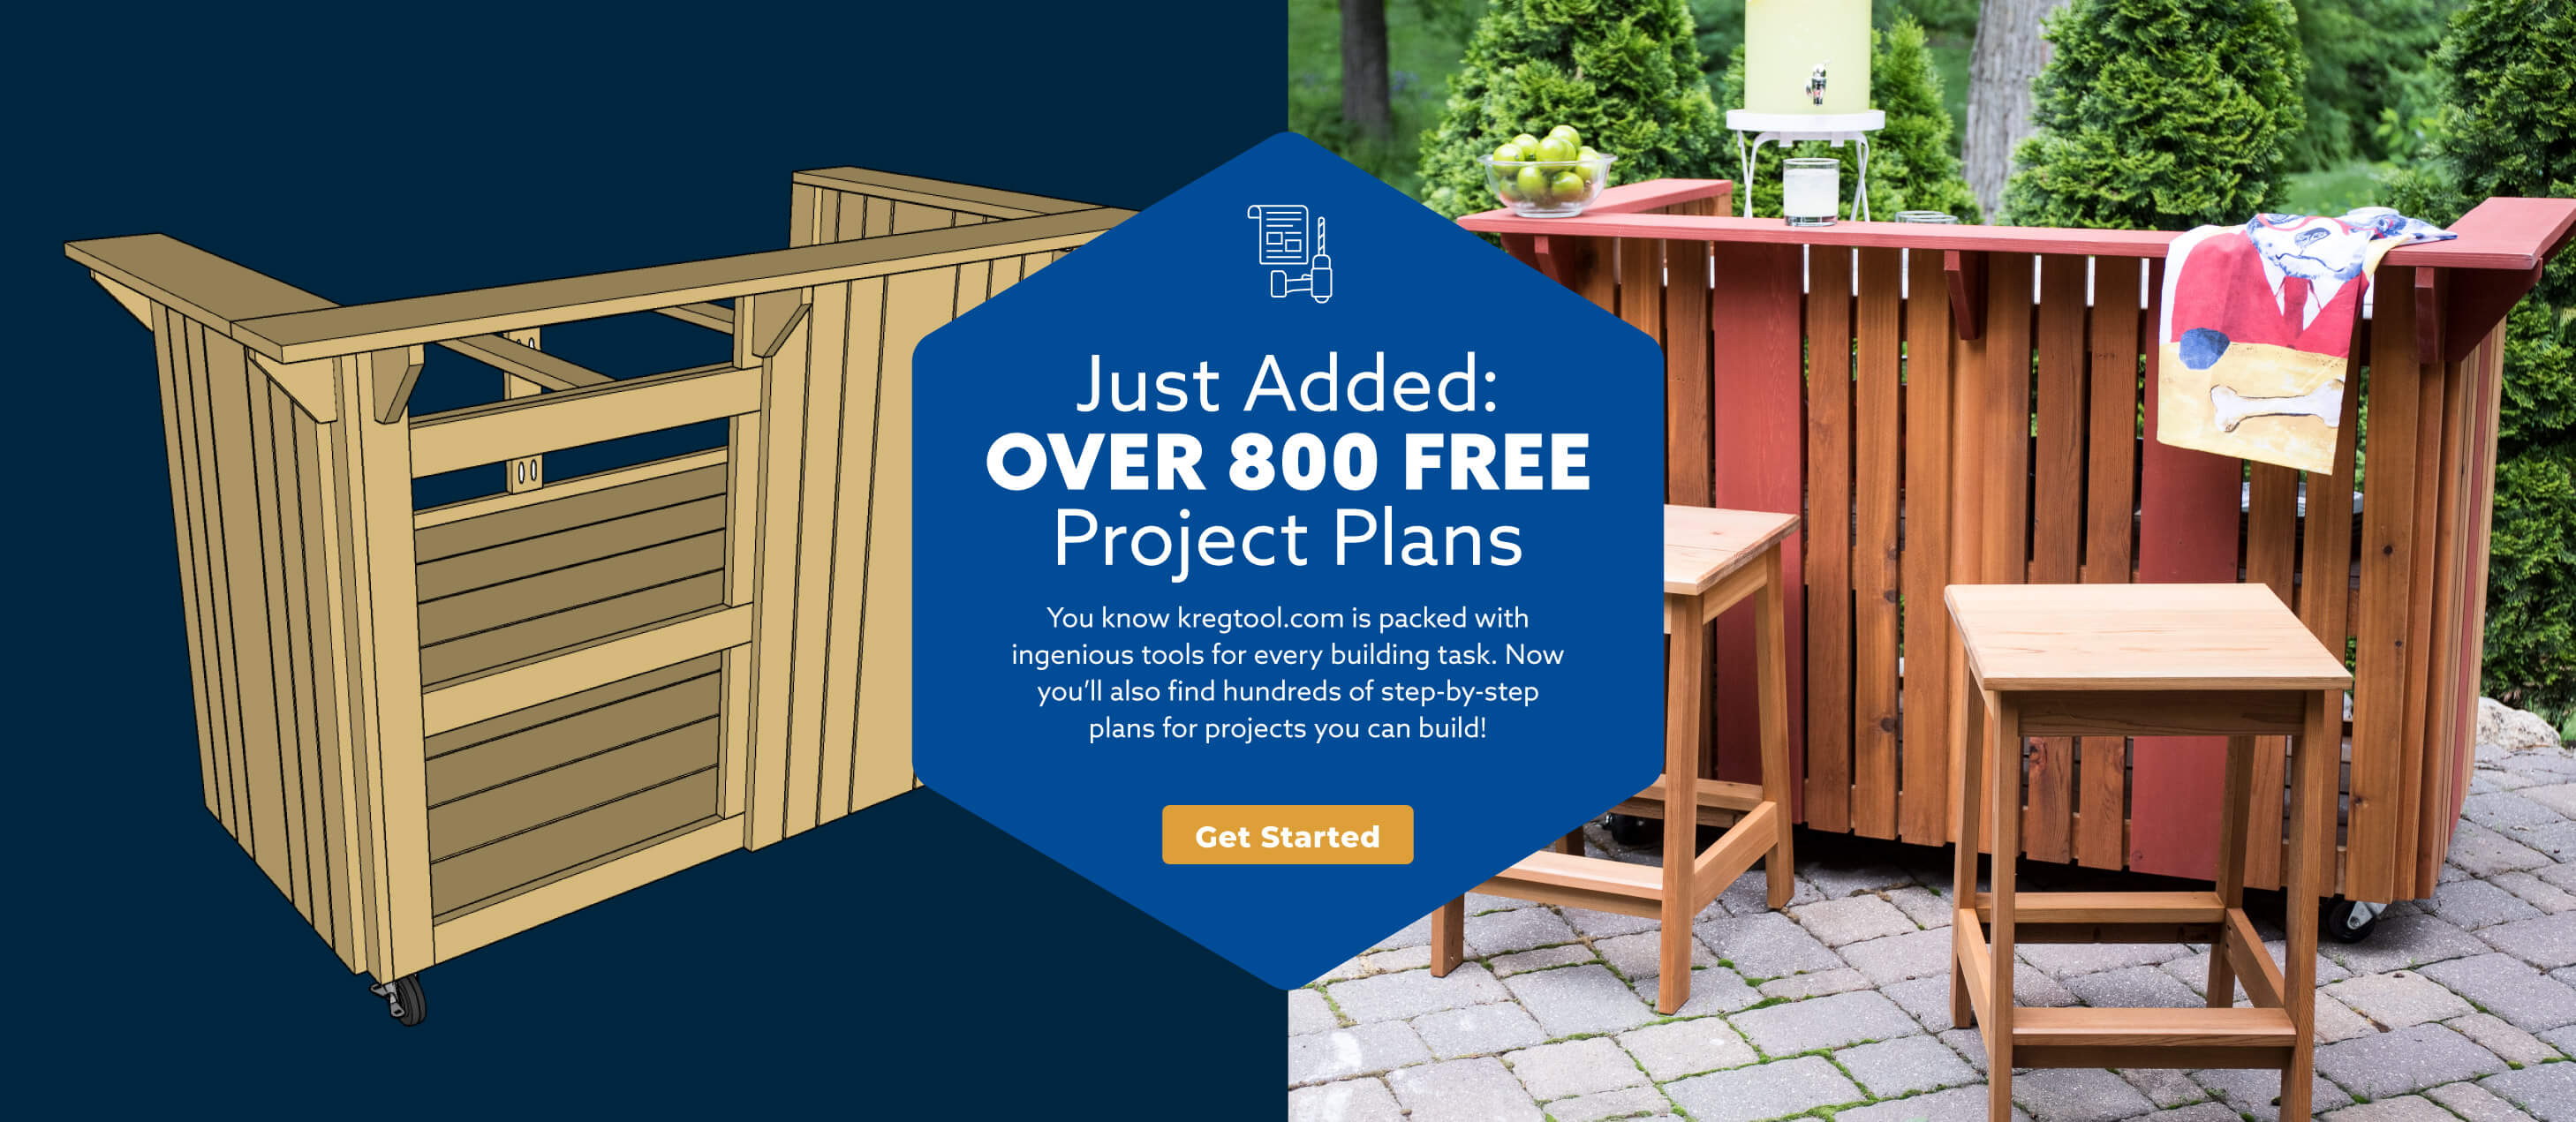 Just Added: Over 800 Free Project Plans